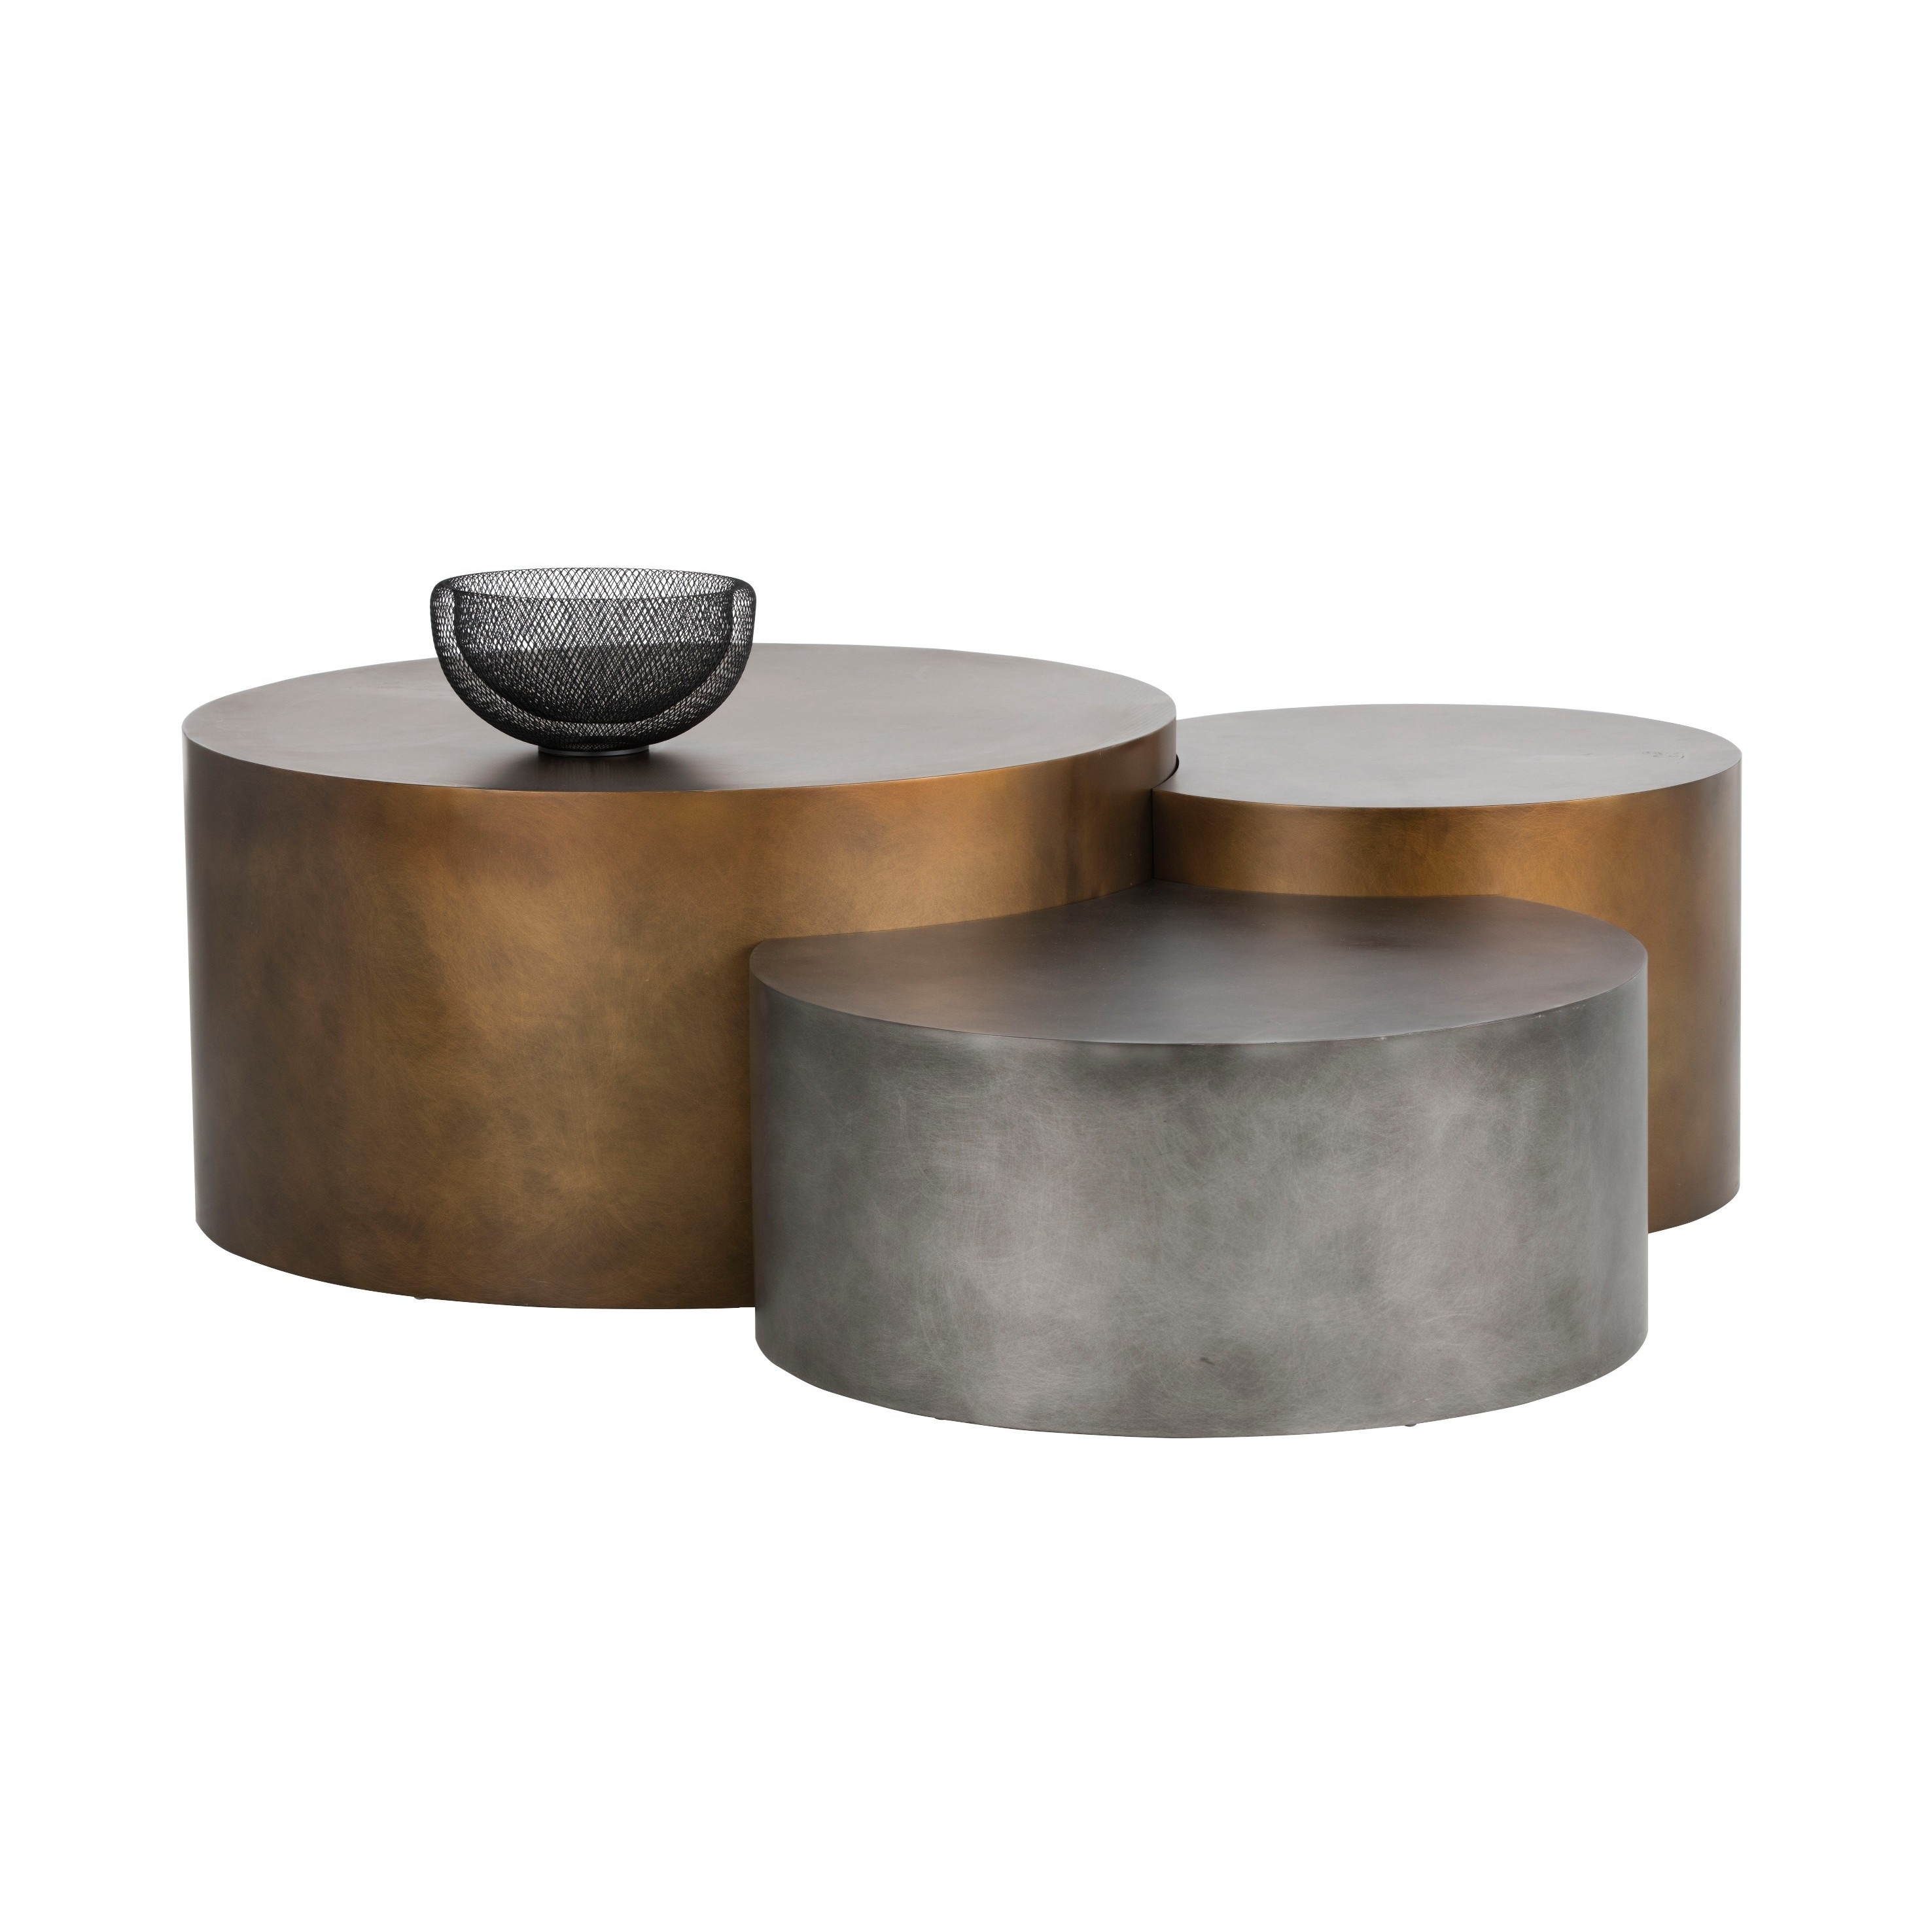 round coffee table sets Shop Ikon Neo Brass Round Coffee Tables (Set of 3)   On Sale  round coffee table sets